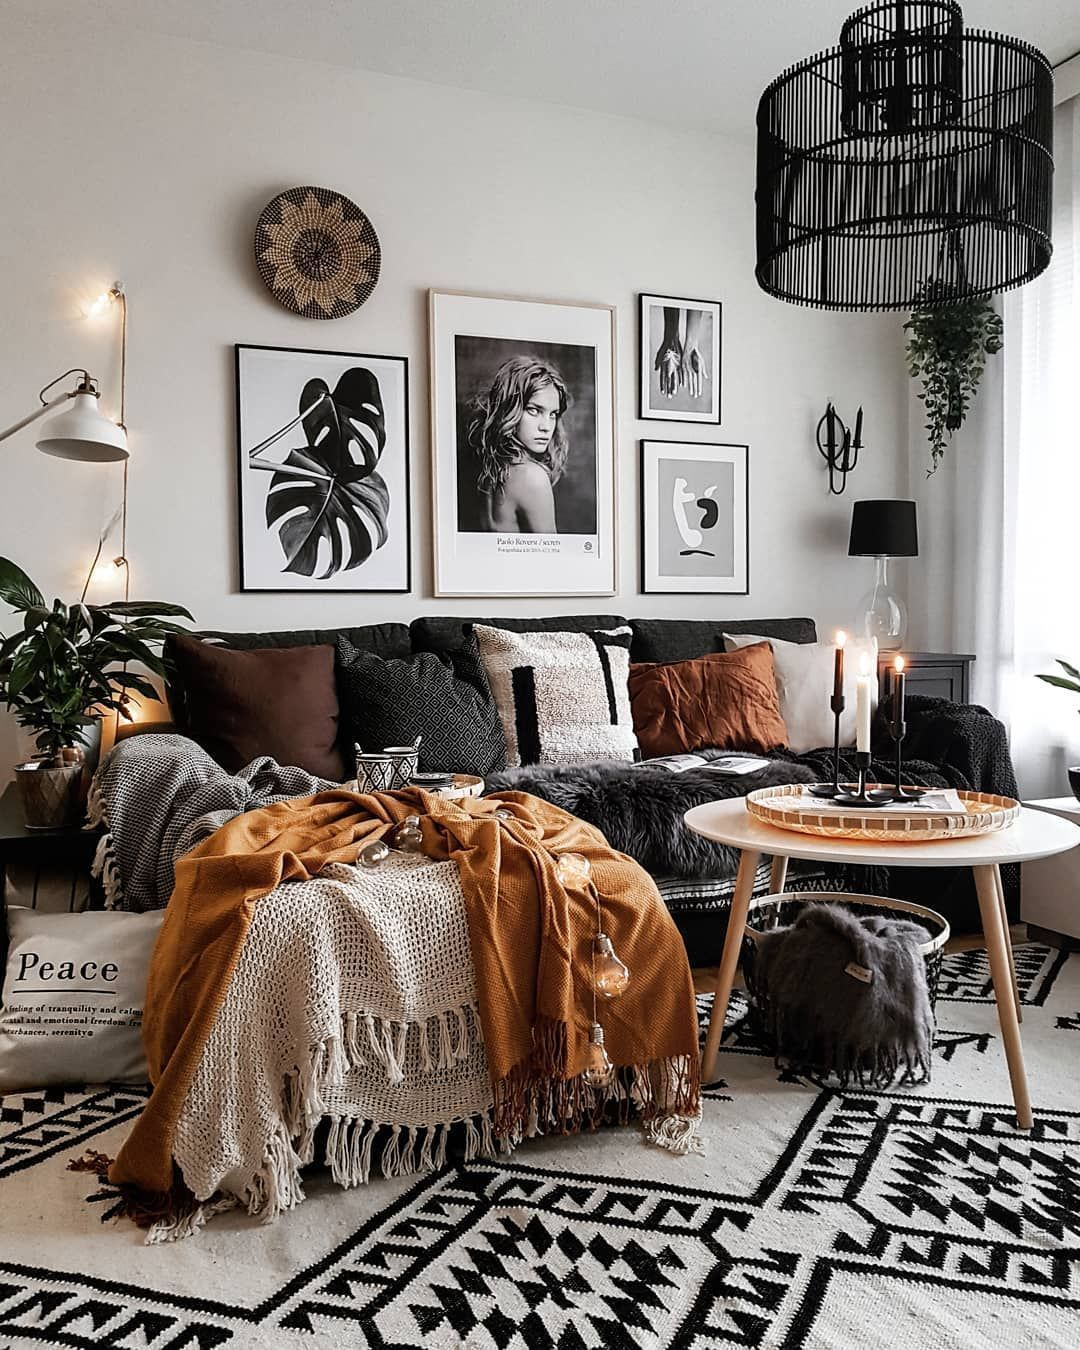 Livin room with cozy fall decor